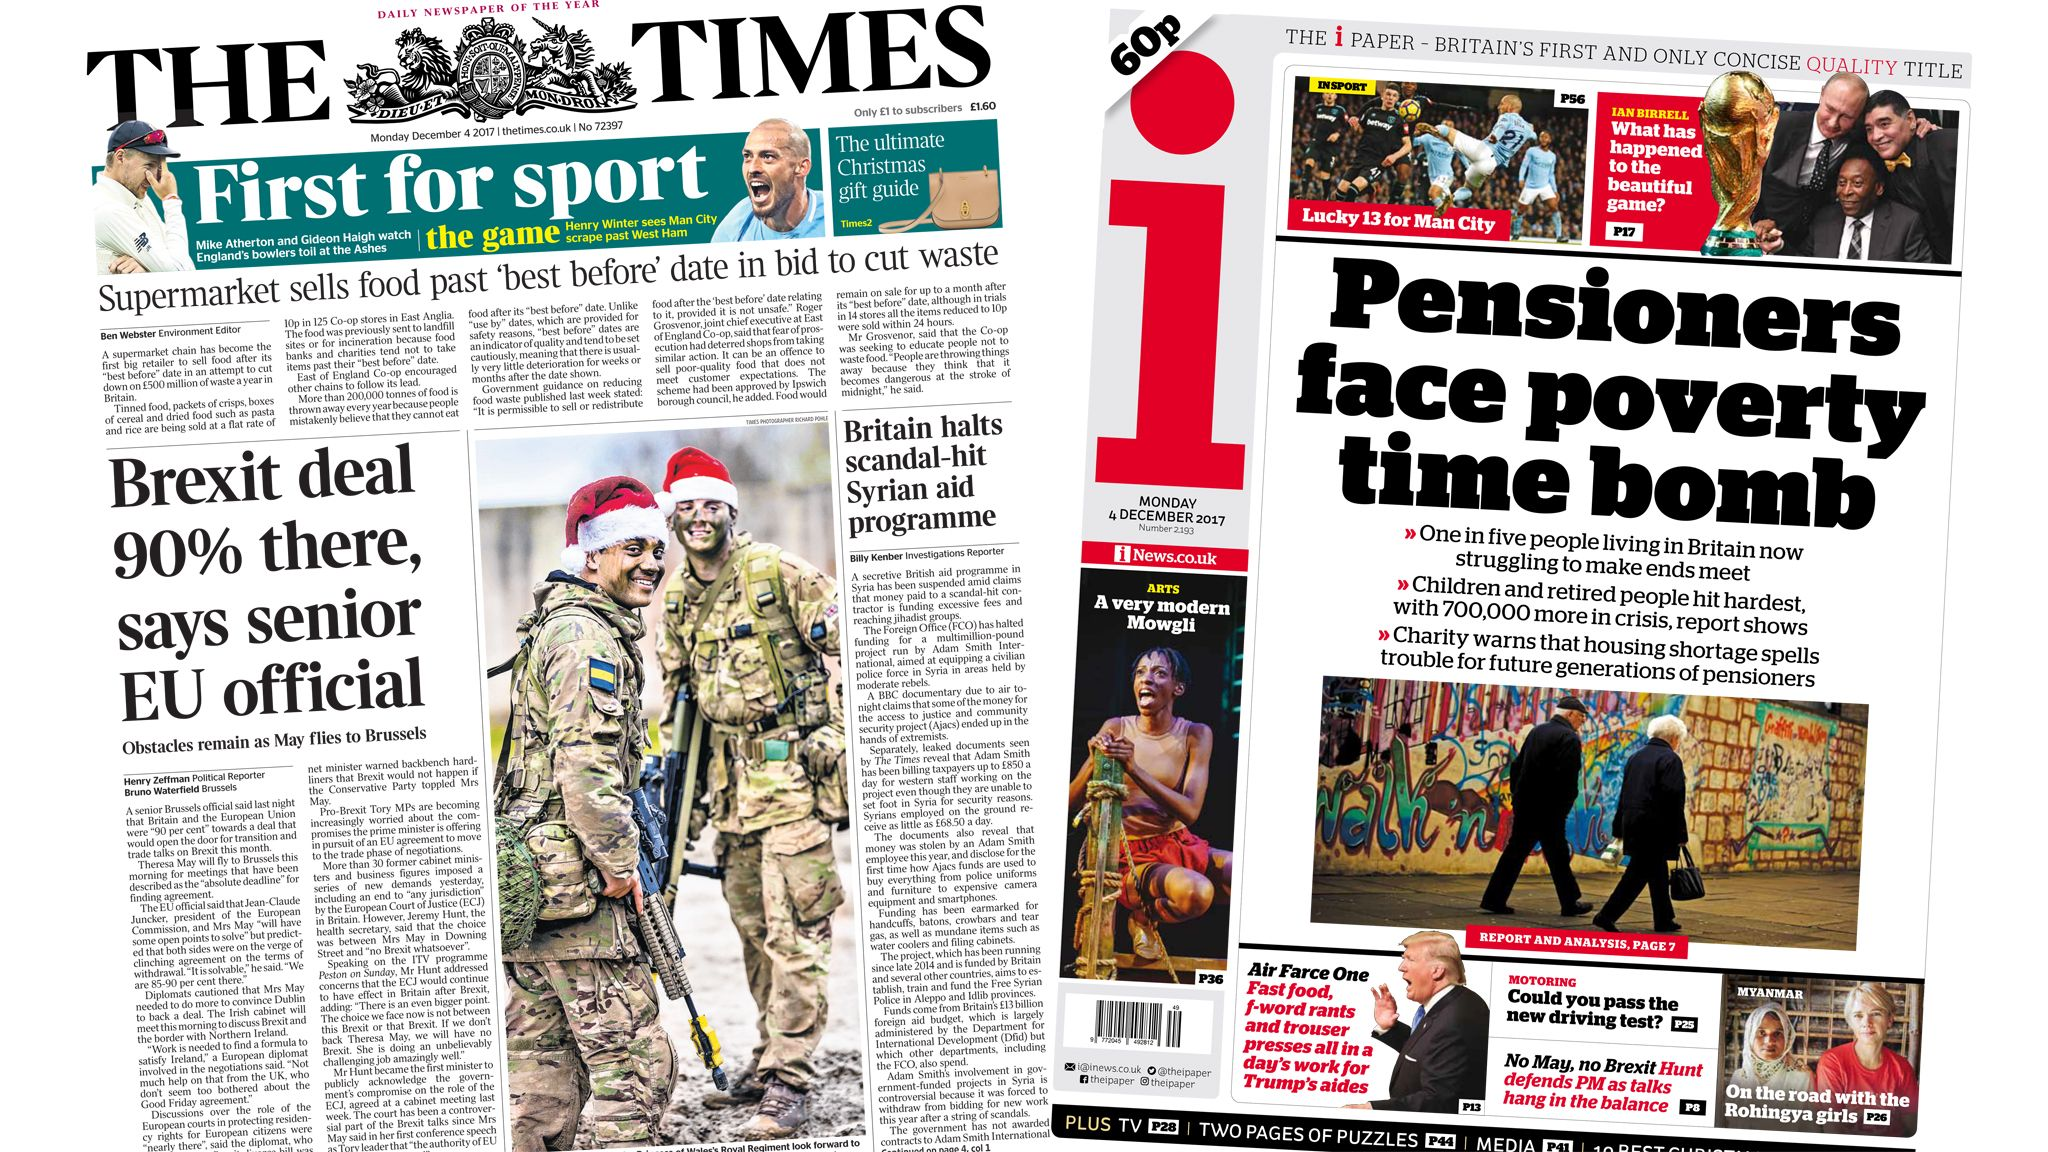 Times and i front pages for 04/12/17